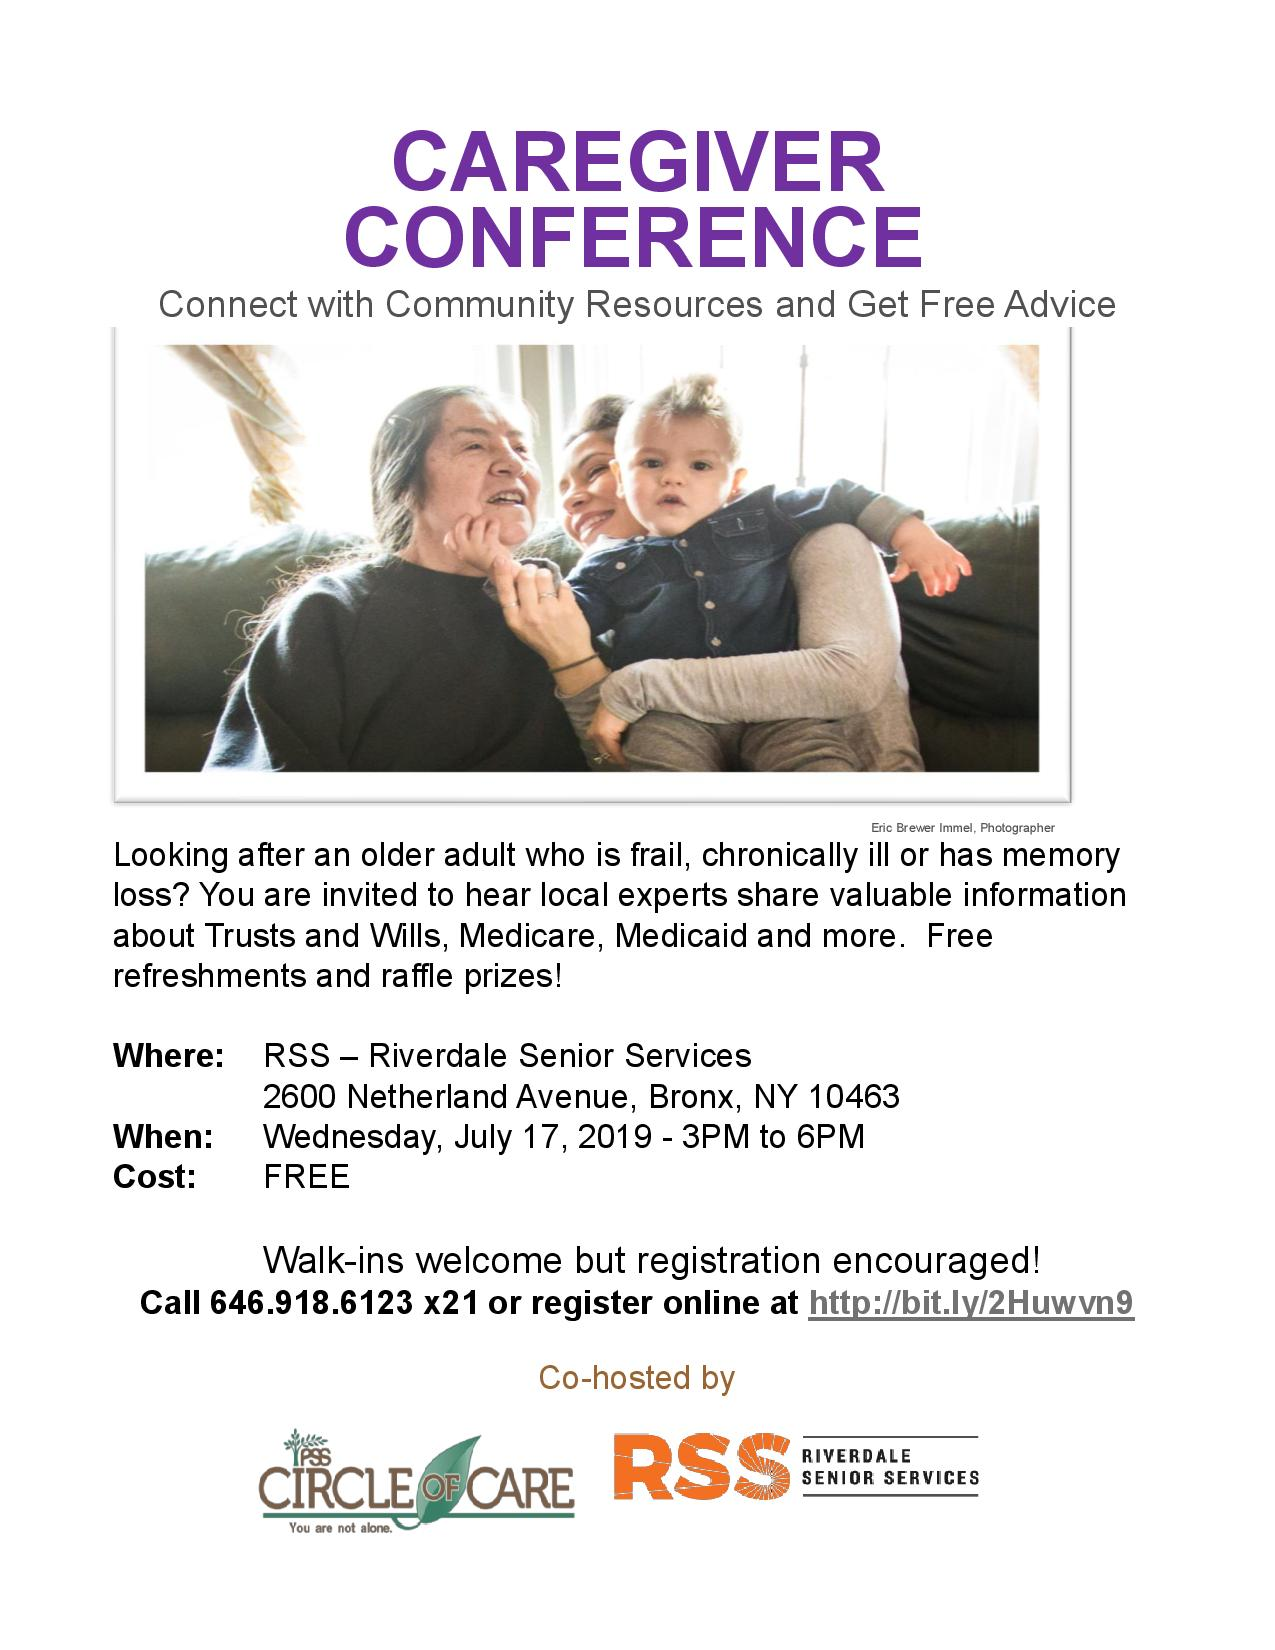 Bronx Caregivers Conference